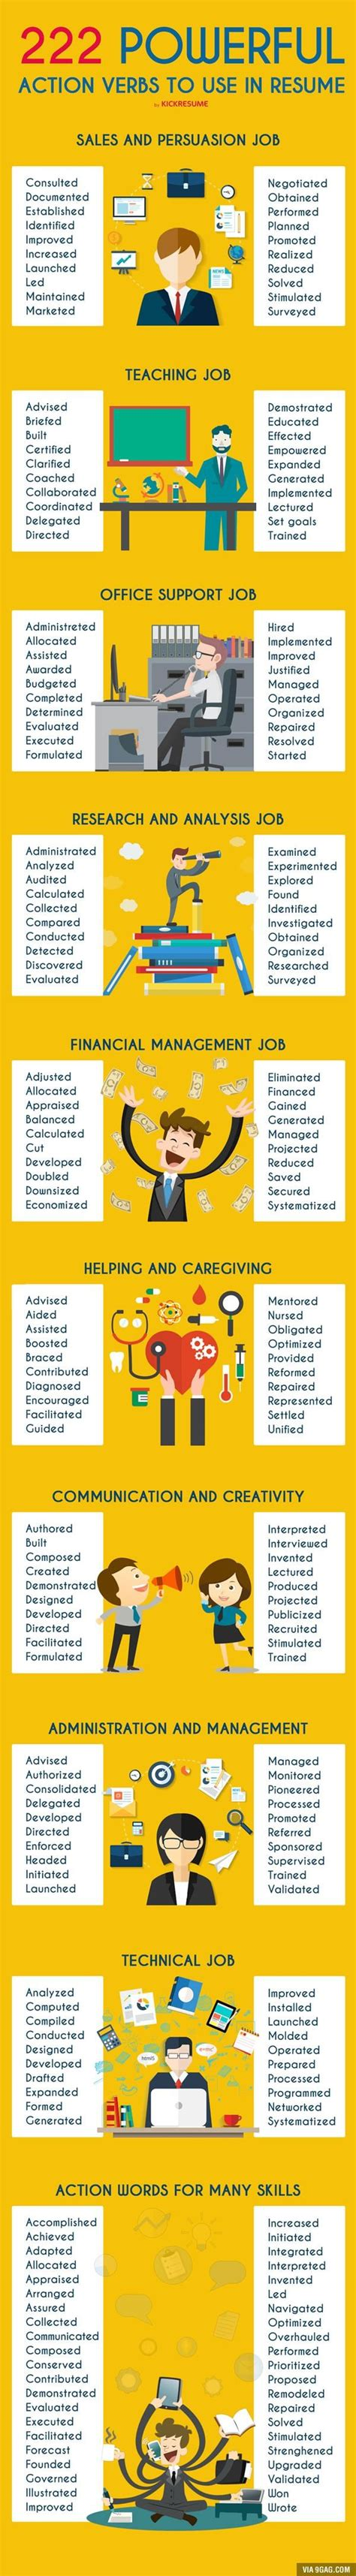 resume sheet 222 verbs to use in your new